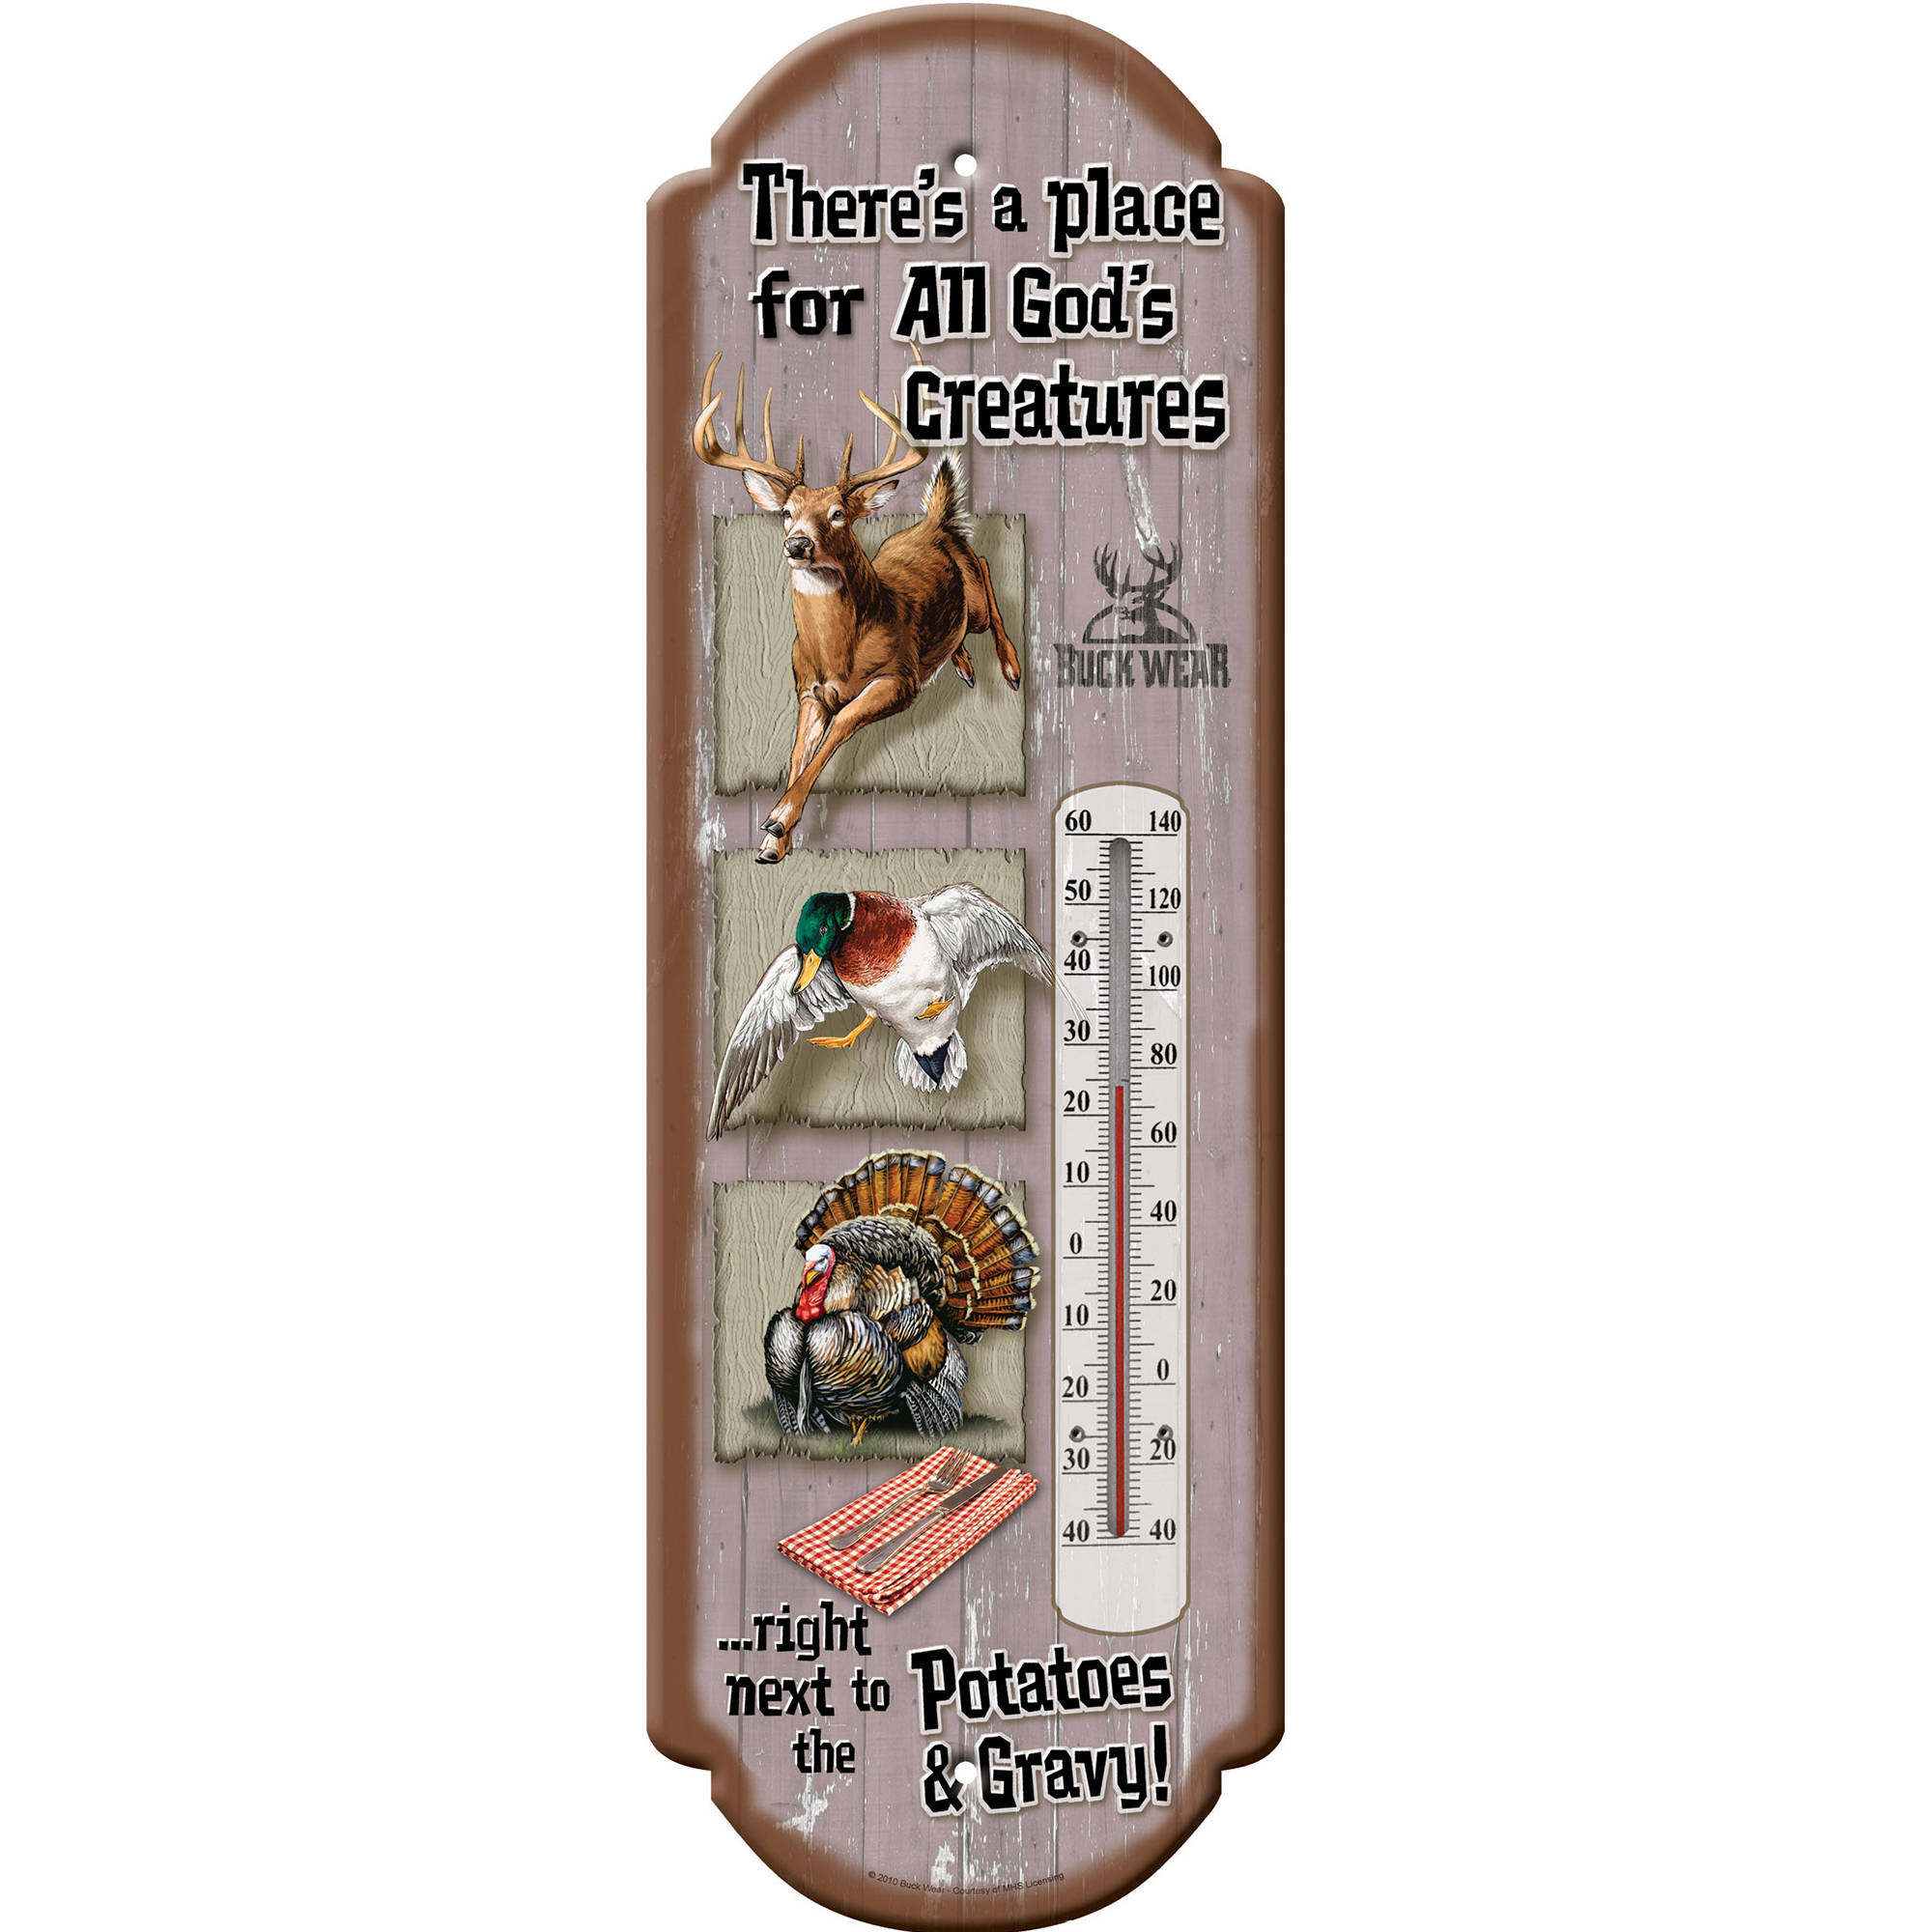 River's Edge God's Creatures Tin Therm